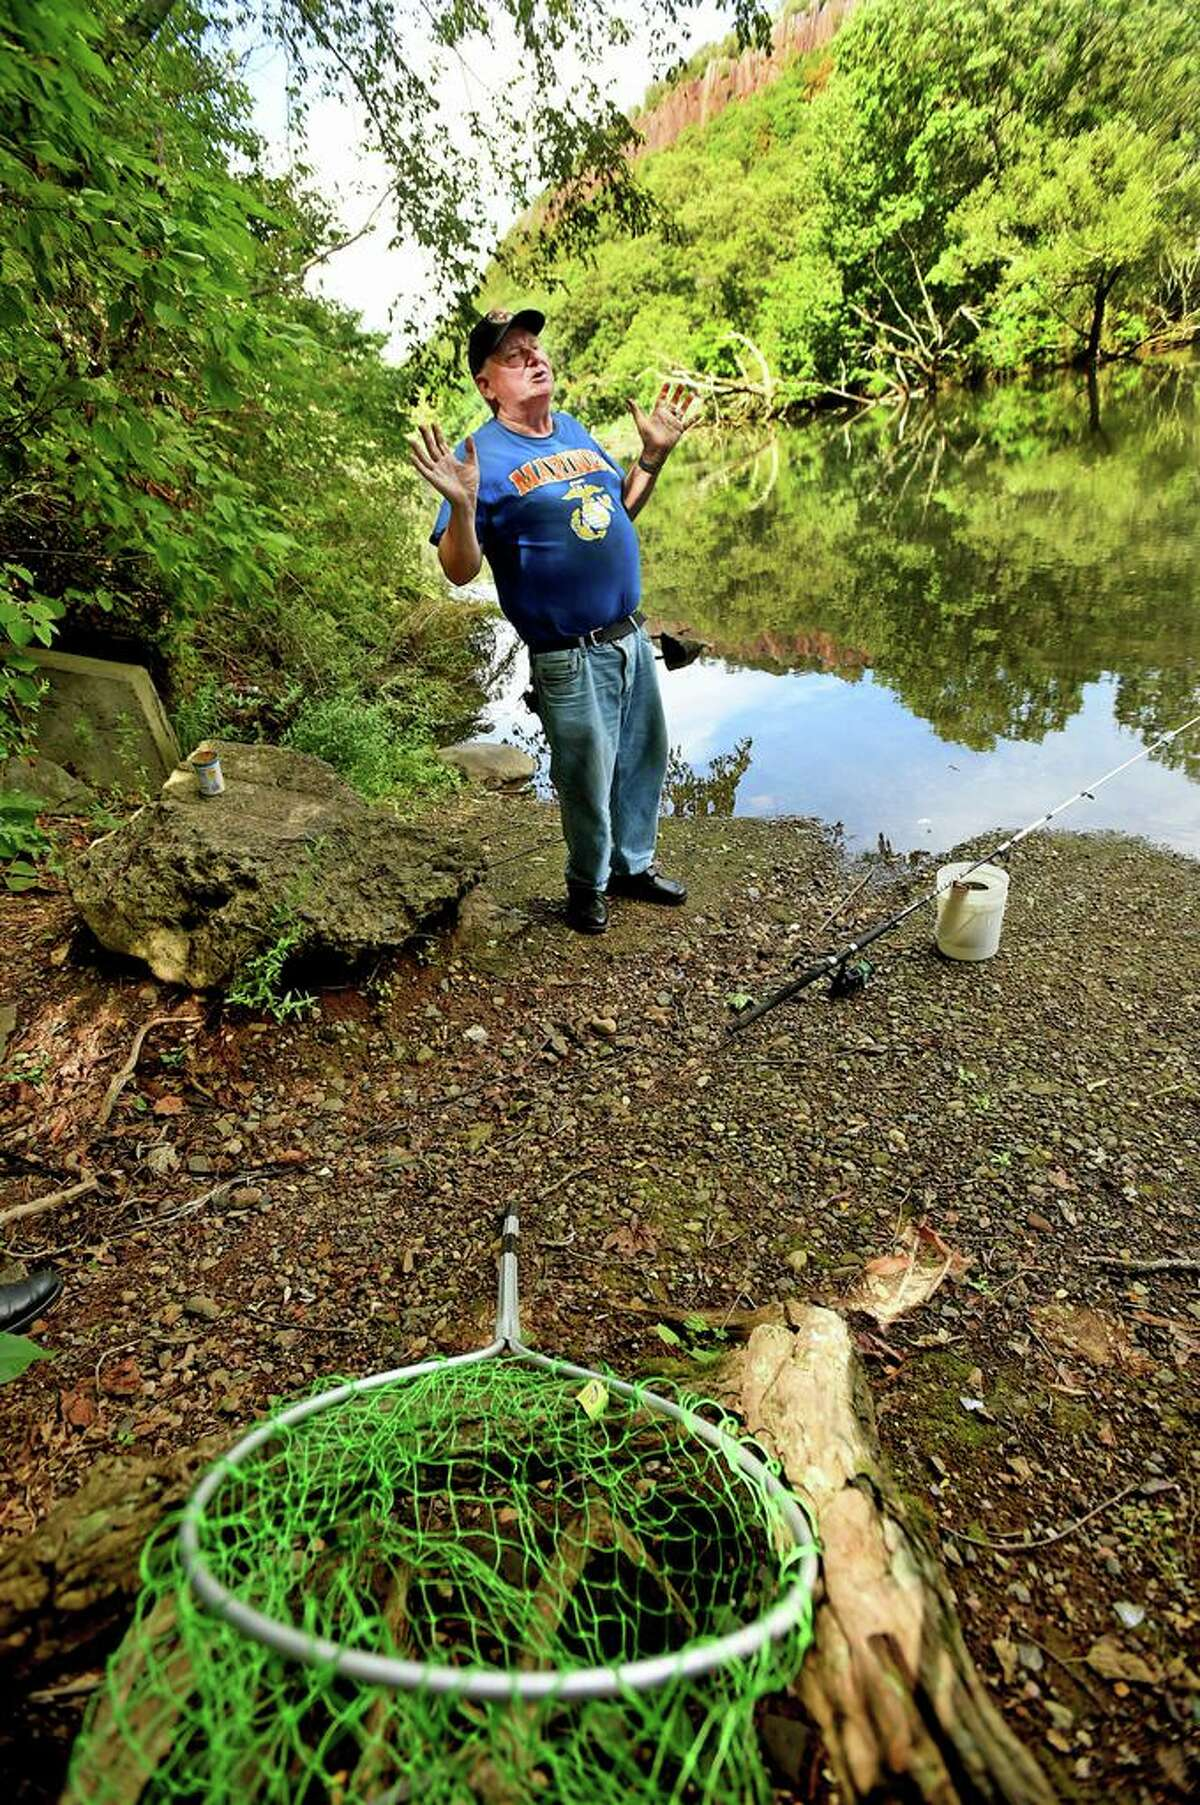 Ray Zalenski, 66, of New Haven fishes for carp at a small bank along the Mill River behind Wilbur Cross High School. He is retired and finds fishing therapeutic.